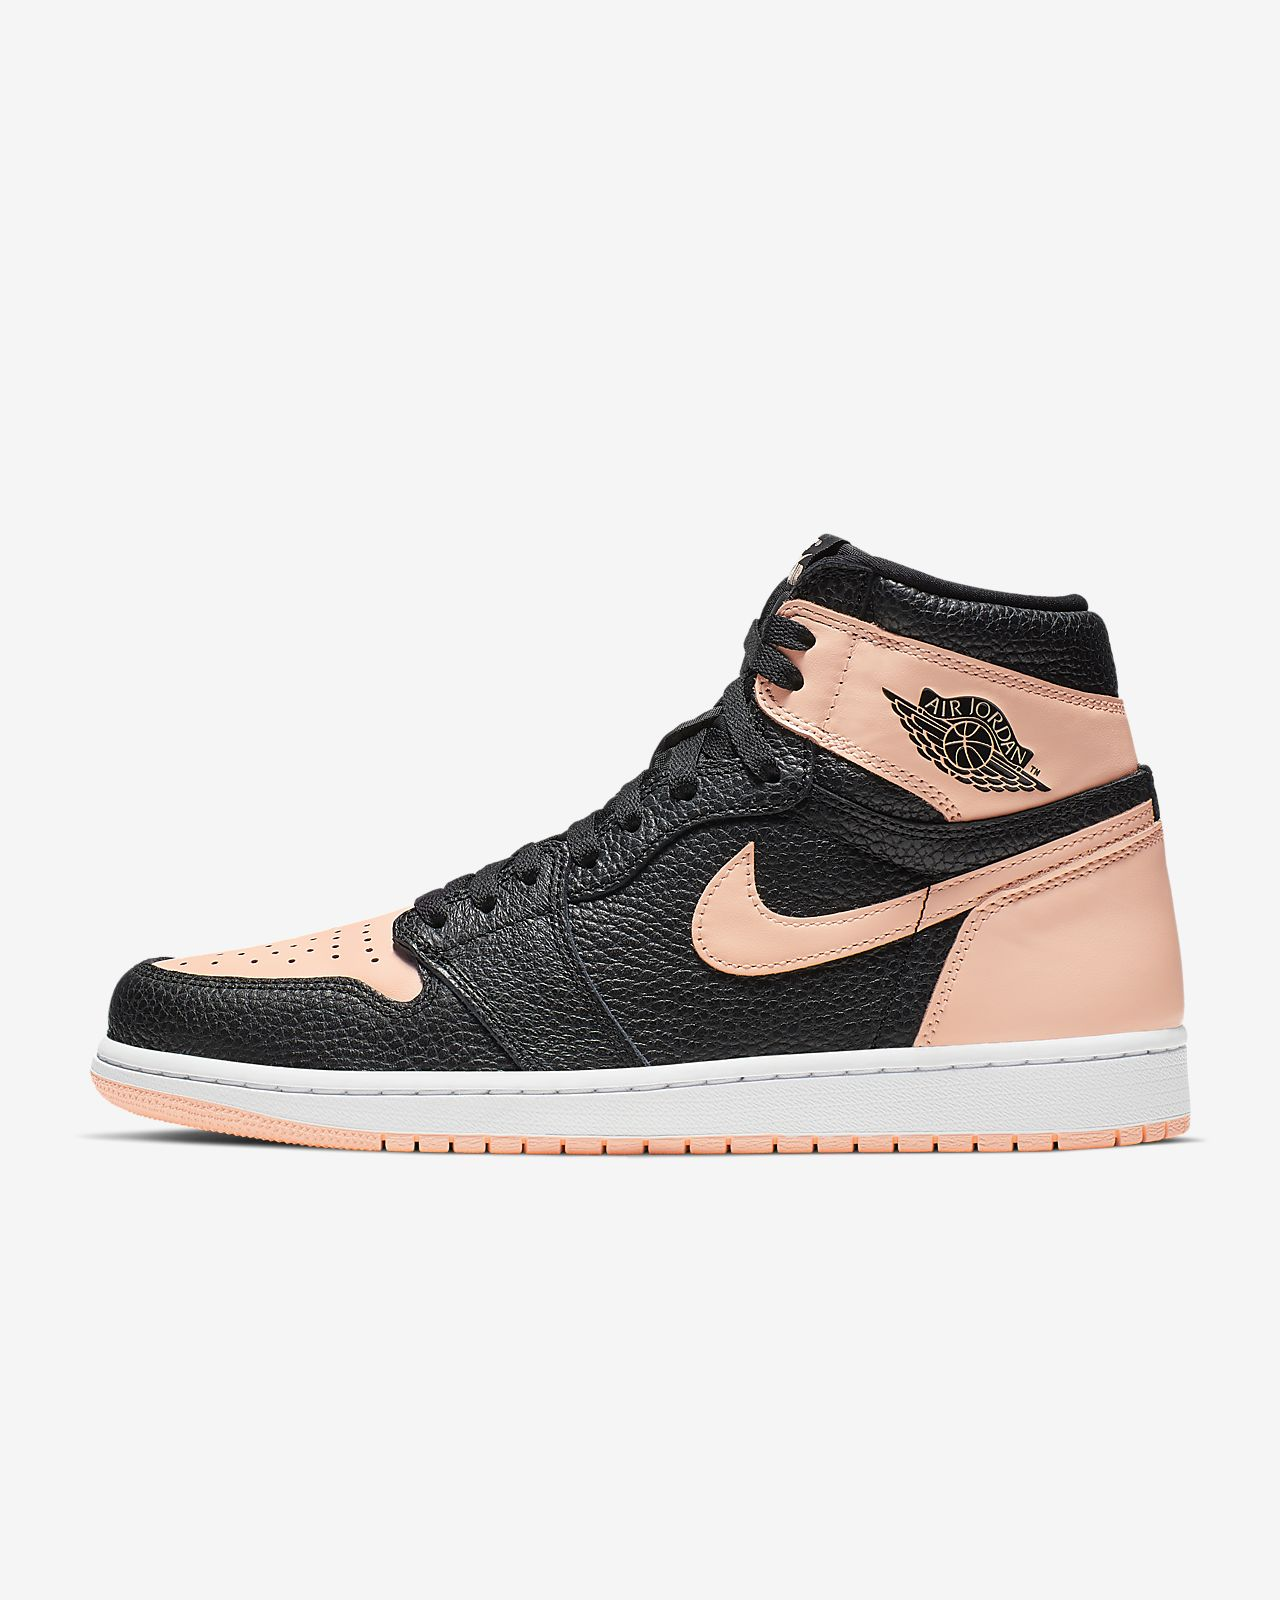 2d6d0e8610d7fc Air Jordan 1 Retro High OG Shoe. Nike.com